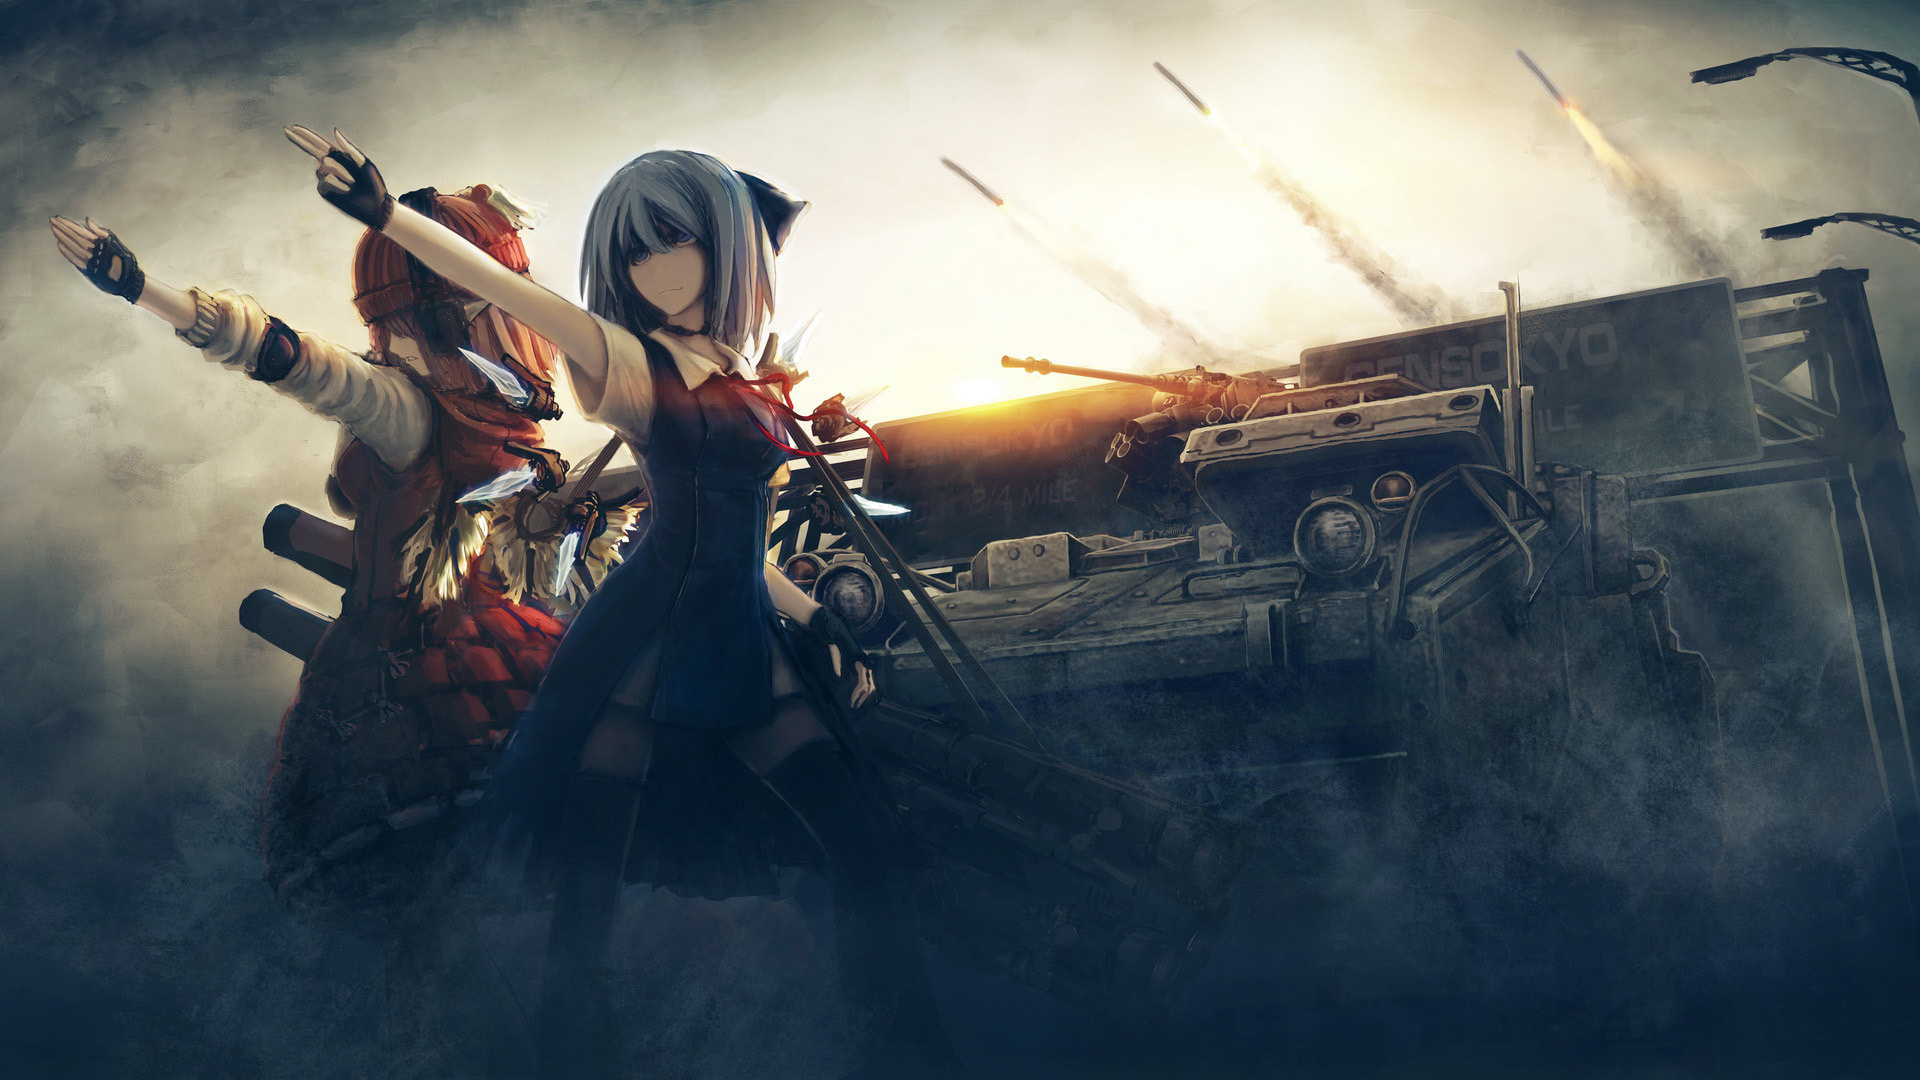 download wallpapers 1920x1080 anime - photo #12